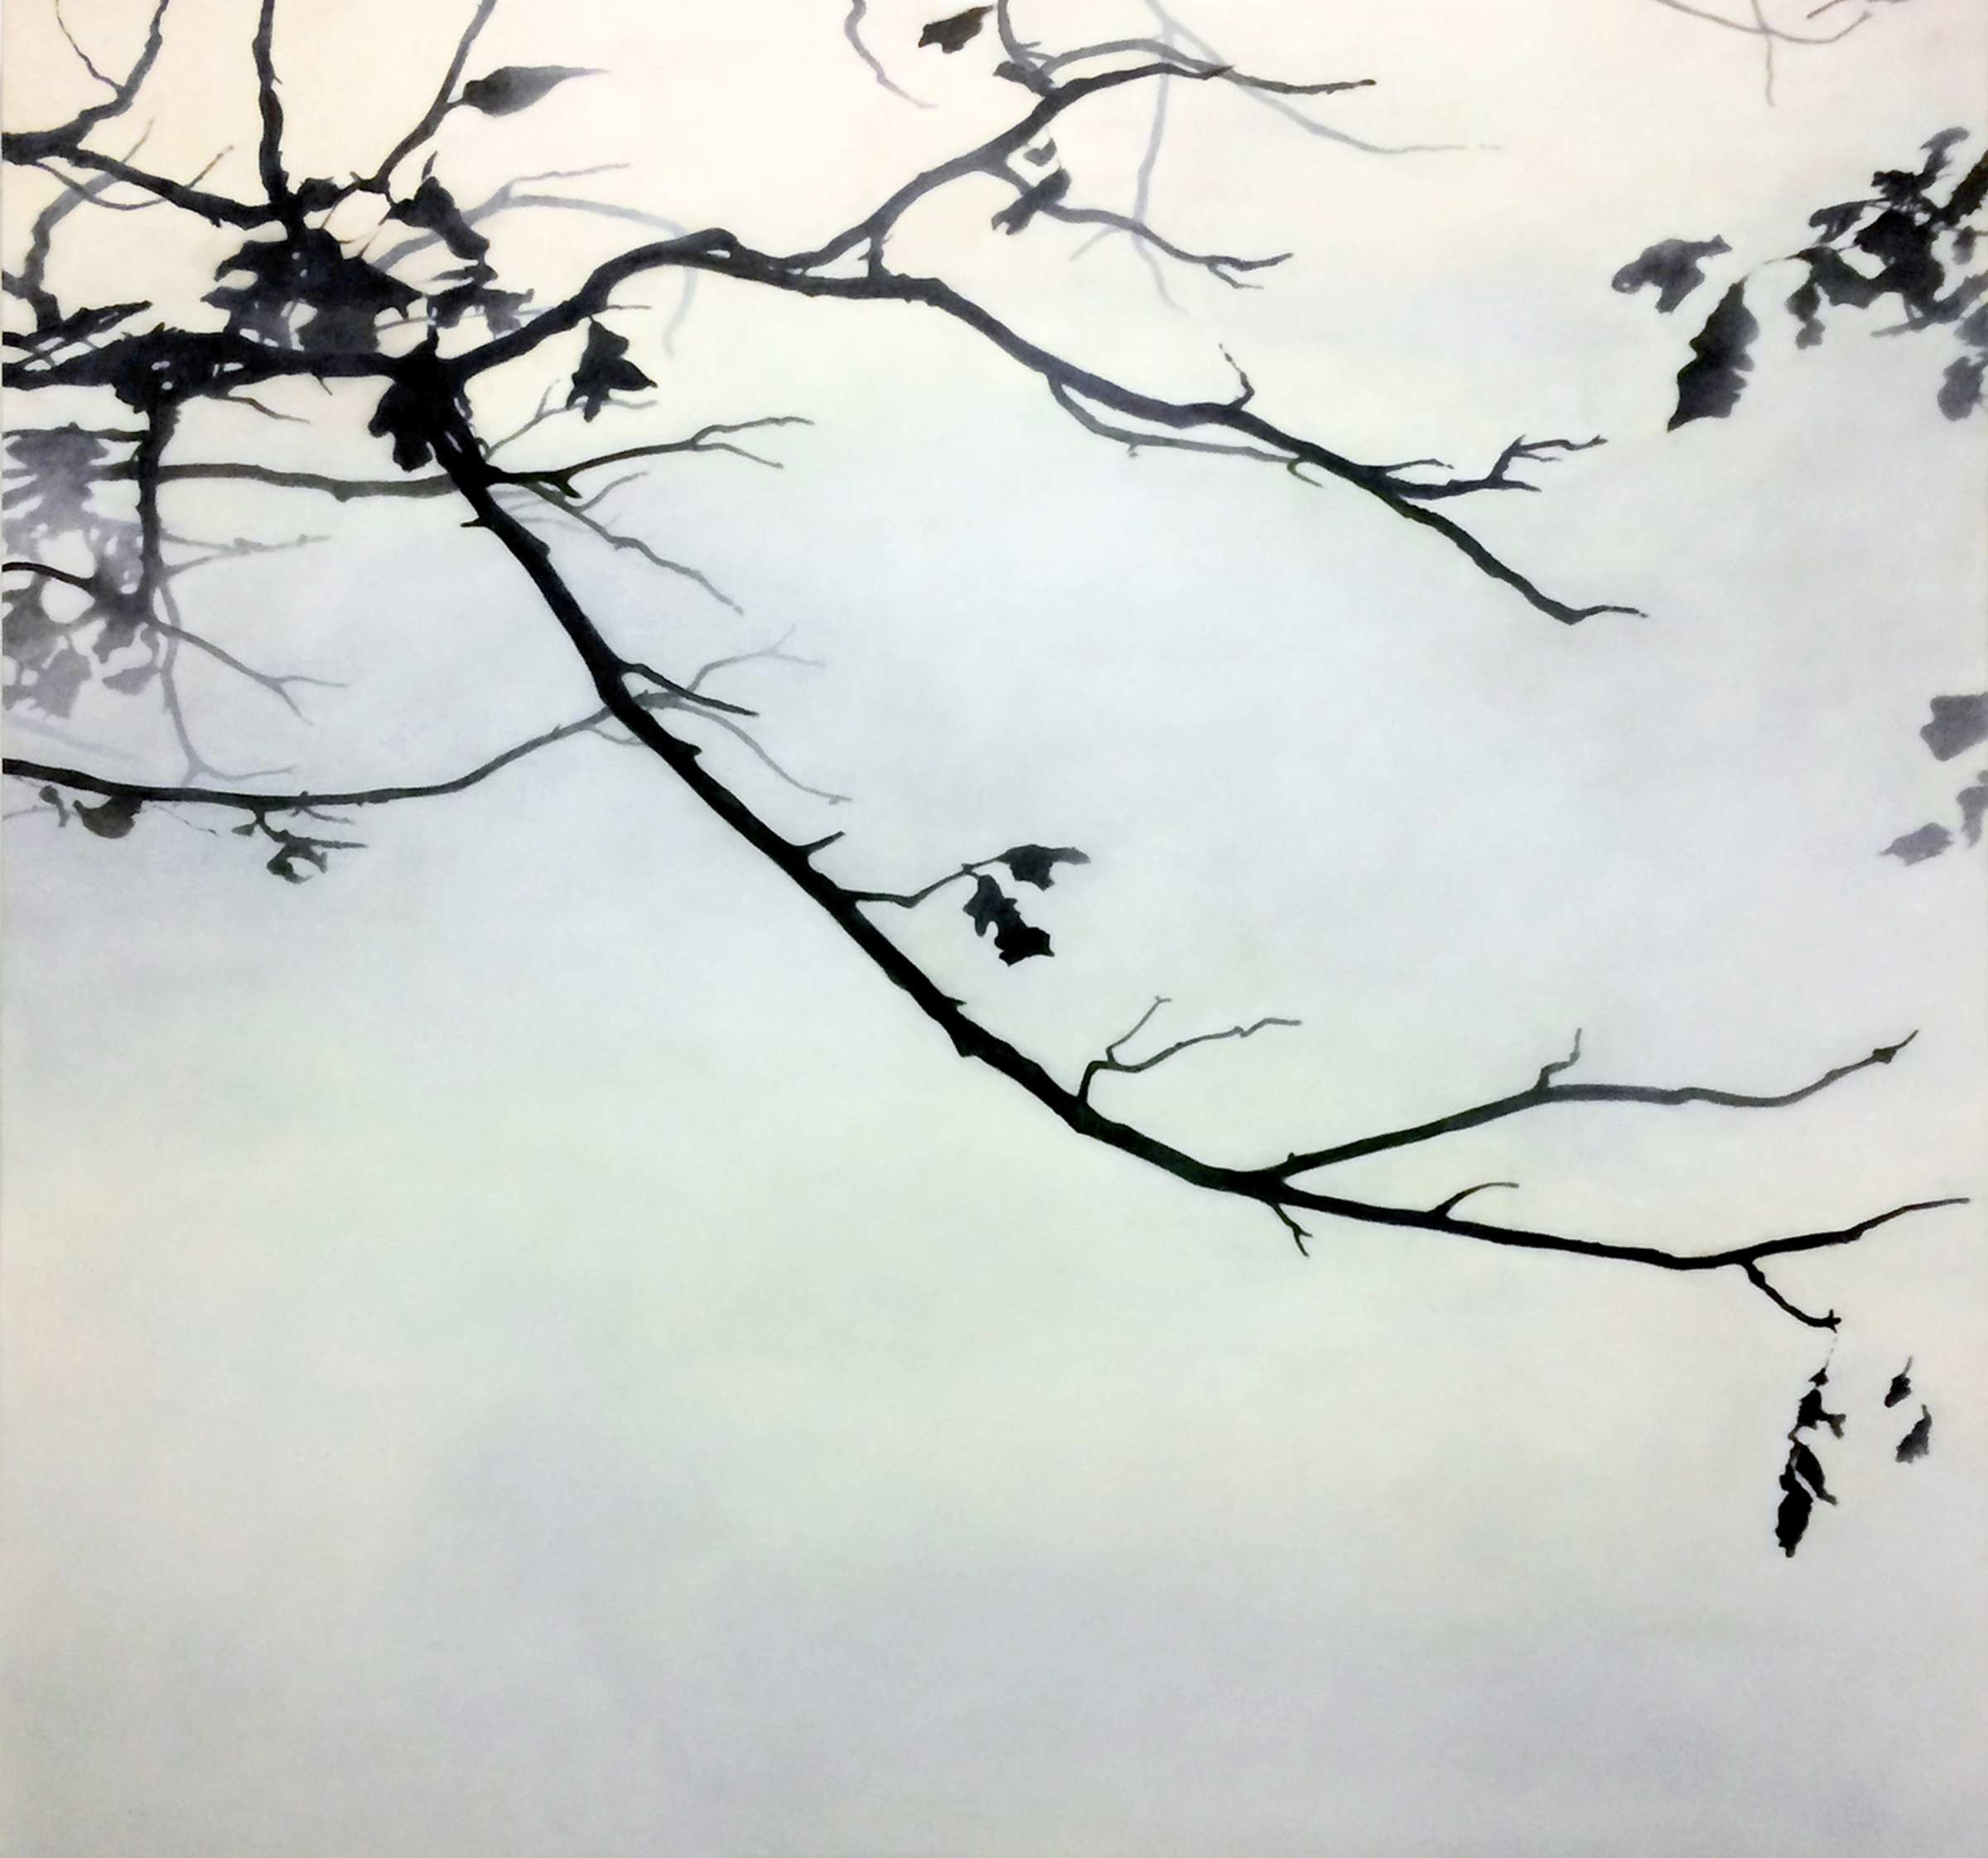 Fall Branches  , 2017  Vine charcoal, acrylic glazes on paper on cradled panel  53.5 x 54 in.